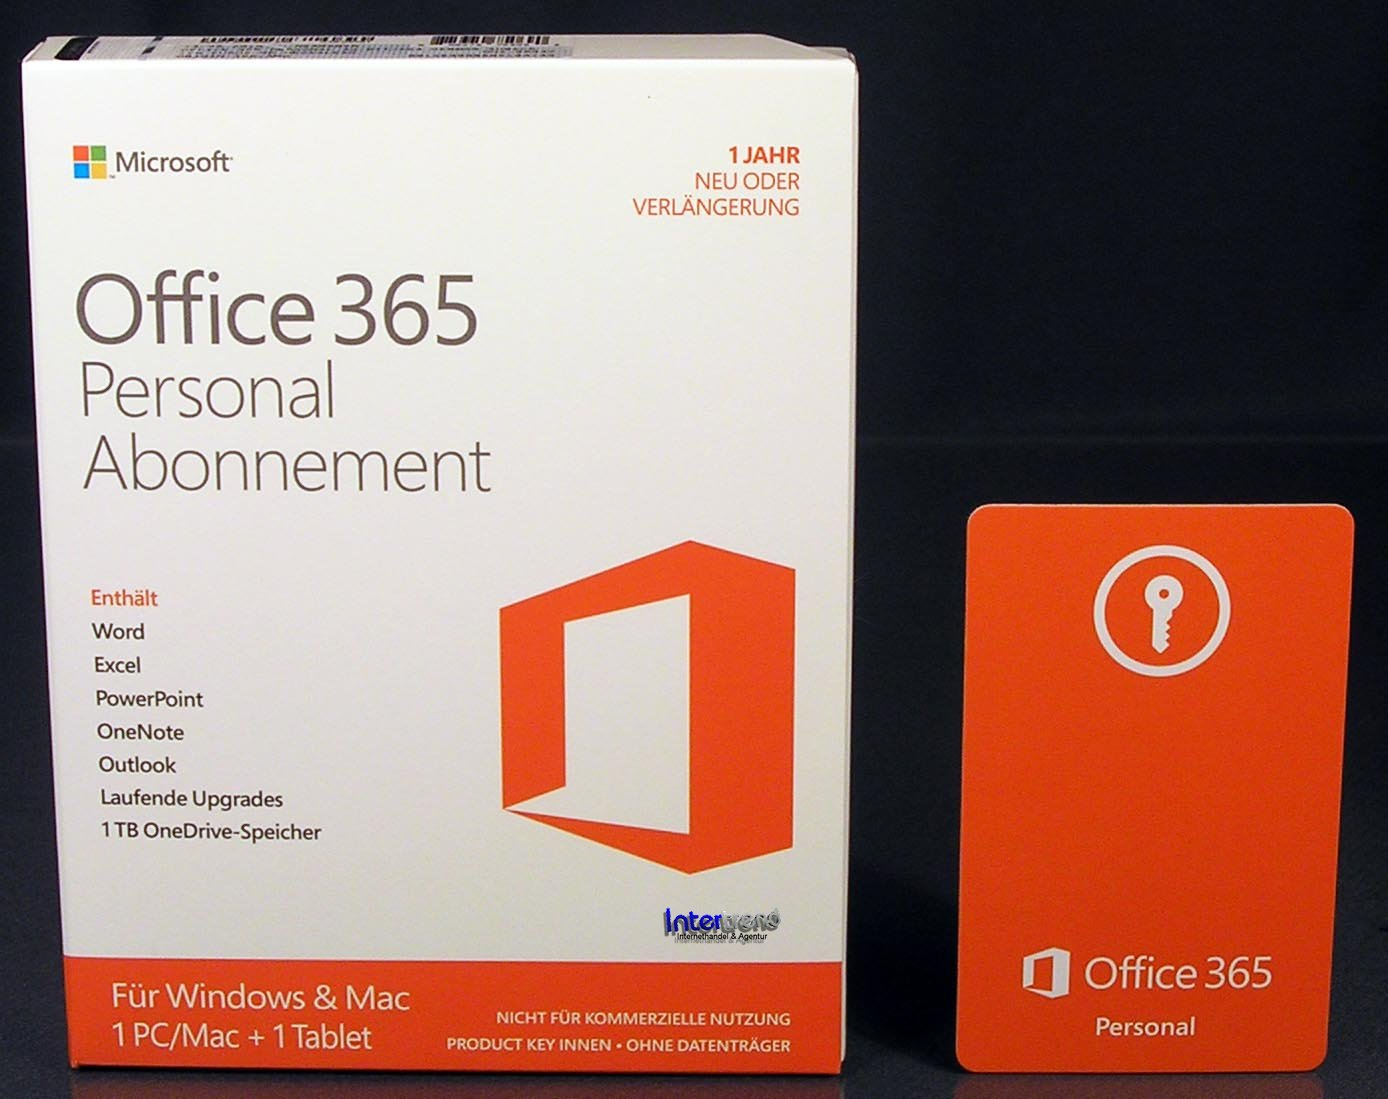 microsoft office 365 personal 2016 vollversion box 1 pc mac 1 tablet abo 885370750690 ebay. Black Bedroom Furniture Sets. Home Design Ideas